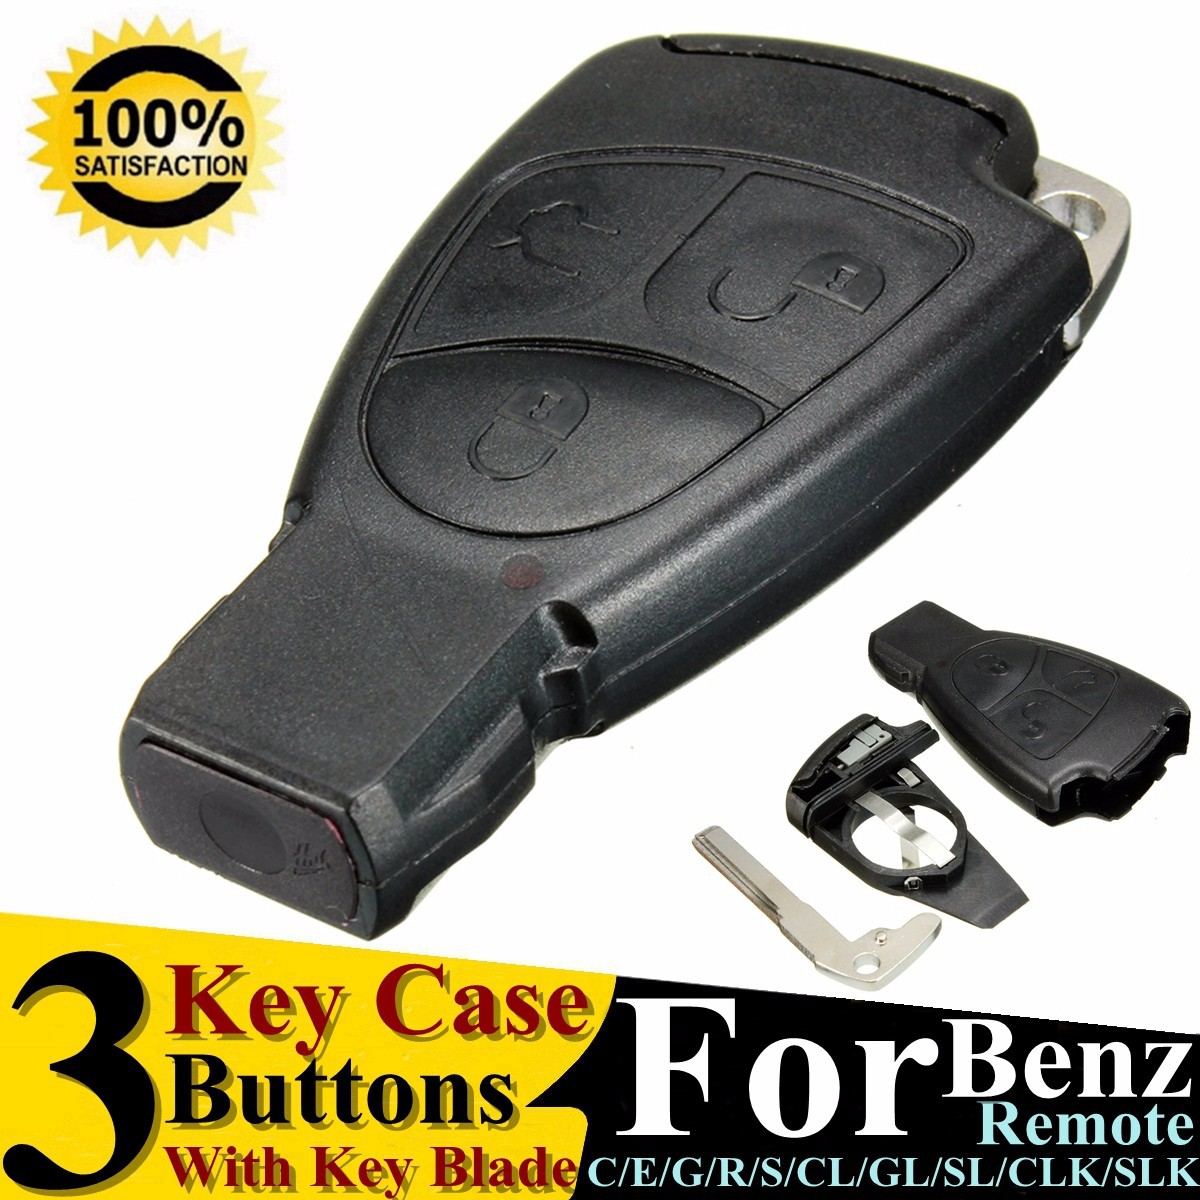 CARCHET 3 Buttons <font><b>Remote</b></font> Auto Smart <font><b>Key</b></font> Case Shell For Mercedes Benz B C E ML S CLK CL GL <font><b>W211</b></font> Chrome Style With Battery Holder image